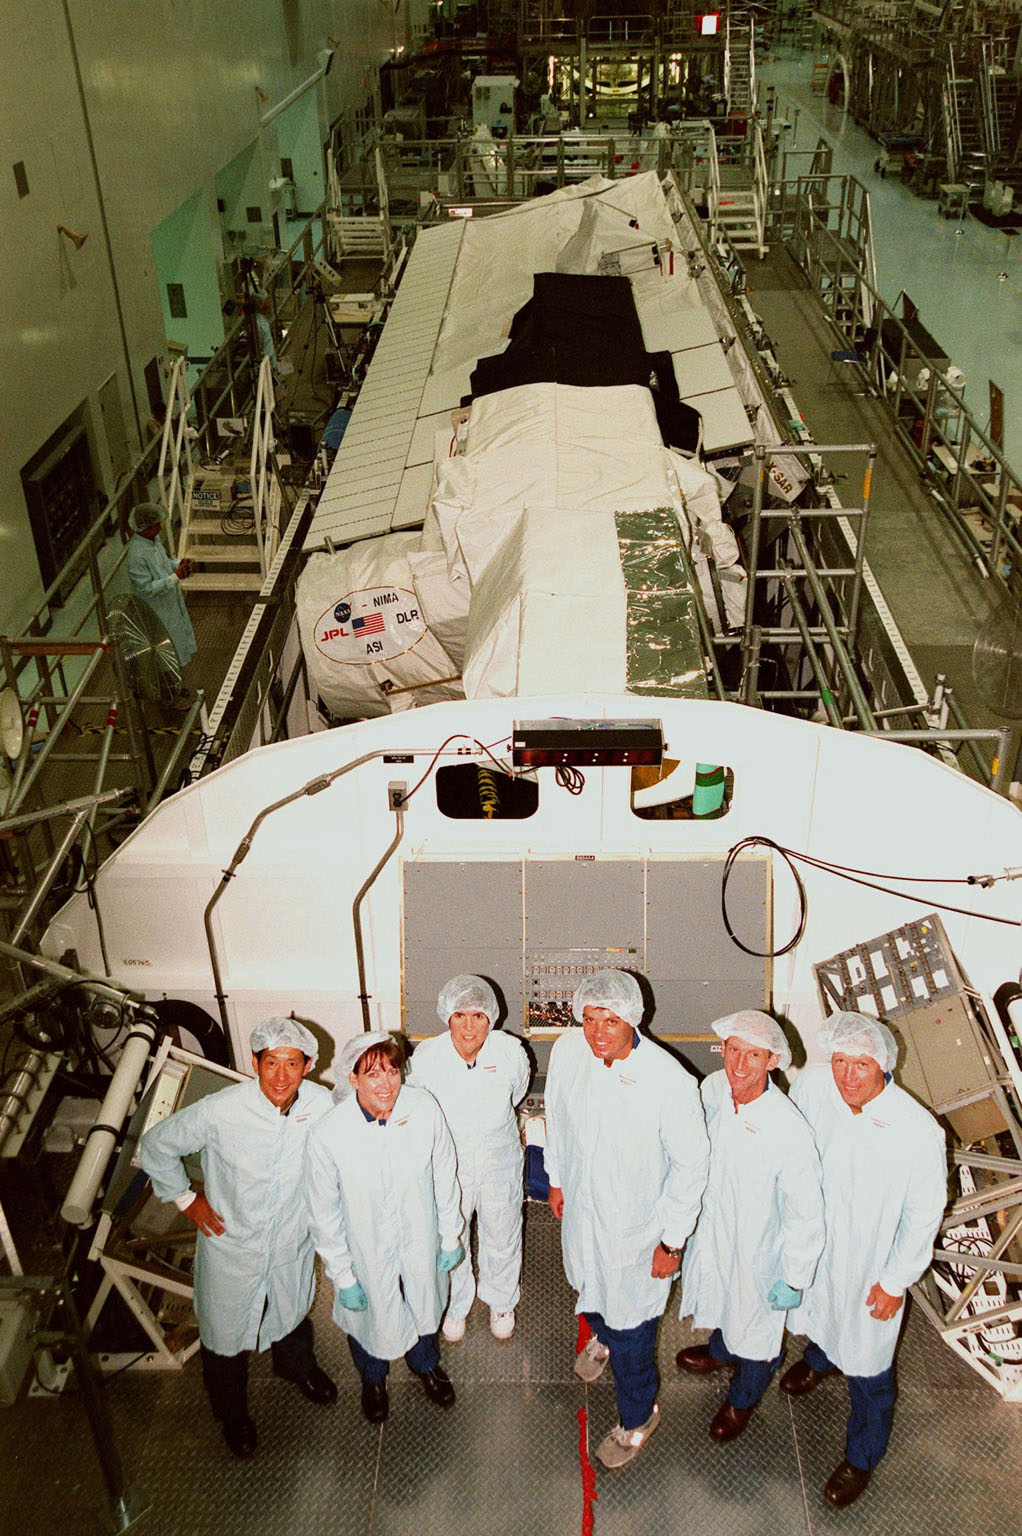 In the Space Station Processing Facility, the STS-99 crew pose in front of the Shuttle Radar Topography Mission, the payload for their mission. From left are Mission Specialists Mamoru Mohri of Japan, Janet Lynn Kavandi (Ph.D.), and Janice Voss (Ph.D.); Commander Kevin R. Kregel; Mission Specialist Gerhard Thiele of Germany; and Pilot Dominic L. Pudwill Gorie. Mohri represents the National Space Development Agency of Japan and Thiele represents the European Space Agency. An international project spearheaded by the National Imagery and Mapping Agency and NASA, with participation of the German Aerospace Center DLR, the SRTM consists of a specially modified radar system that will gather data for the most accurate and complete topographic map of the Earth's surface that has ever been assembled. SRTM will make use of radar interferometry, wherein two radar images are taken from slightly different locations. Differences between these images allow for the calculation of surface elevation, or change. The SRTM hardware will consist of one radar antenna in the shuttle payload bay and a second radar antenna attached to the end of a mast extended 60 meters (195 feet) out from the shuttle. STS-99 is scheduled to launch Sept. 16 at 8:47 a.m. from Launch Pad 39A